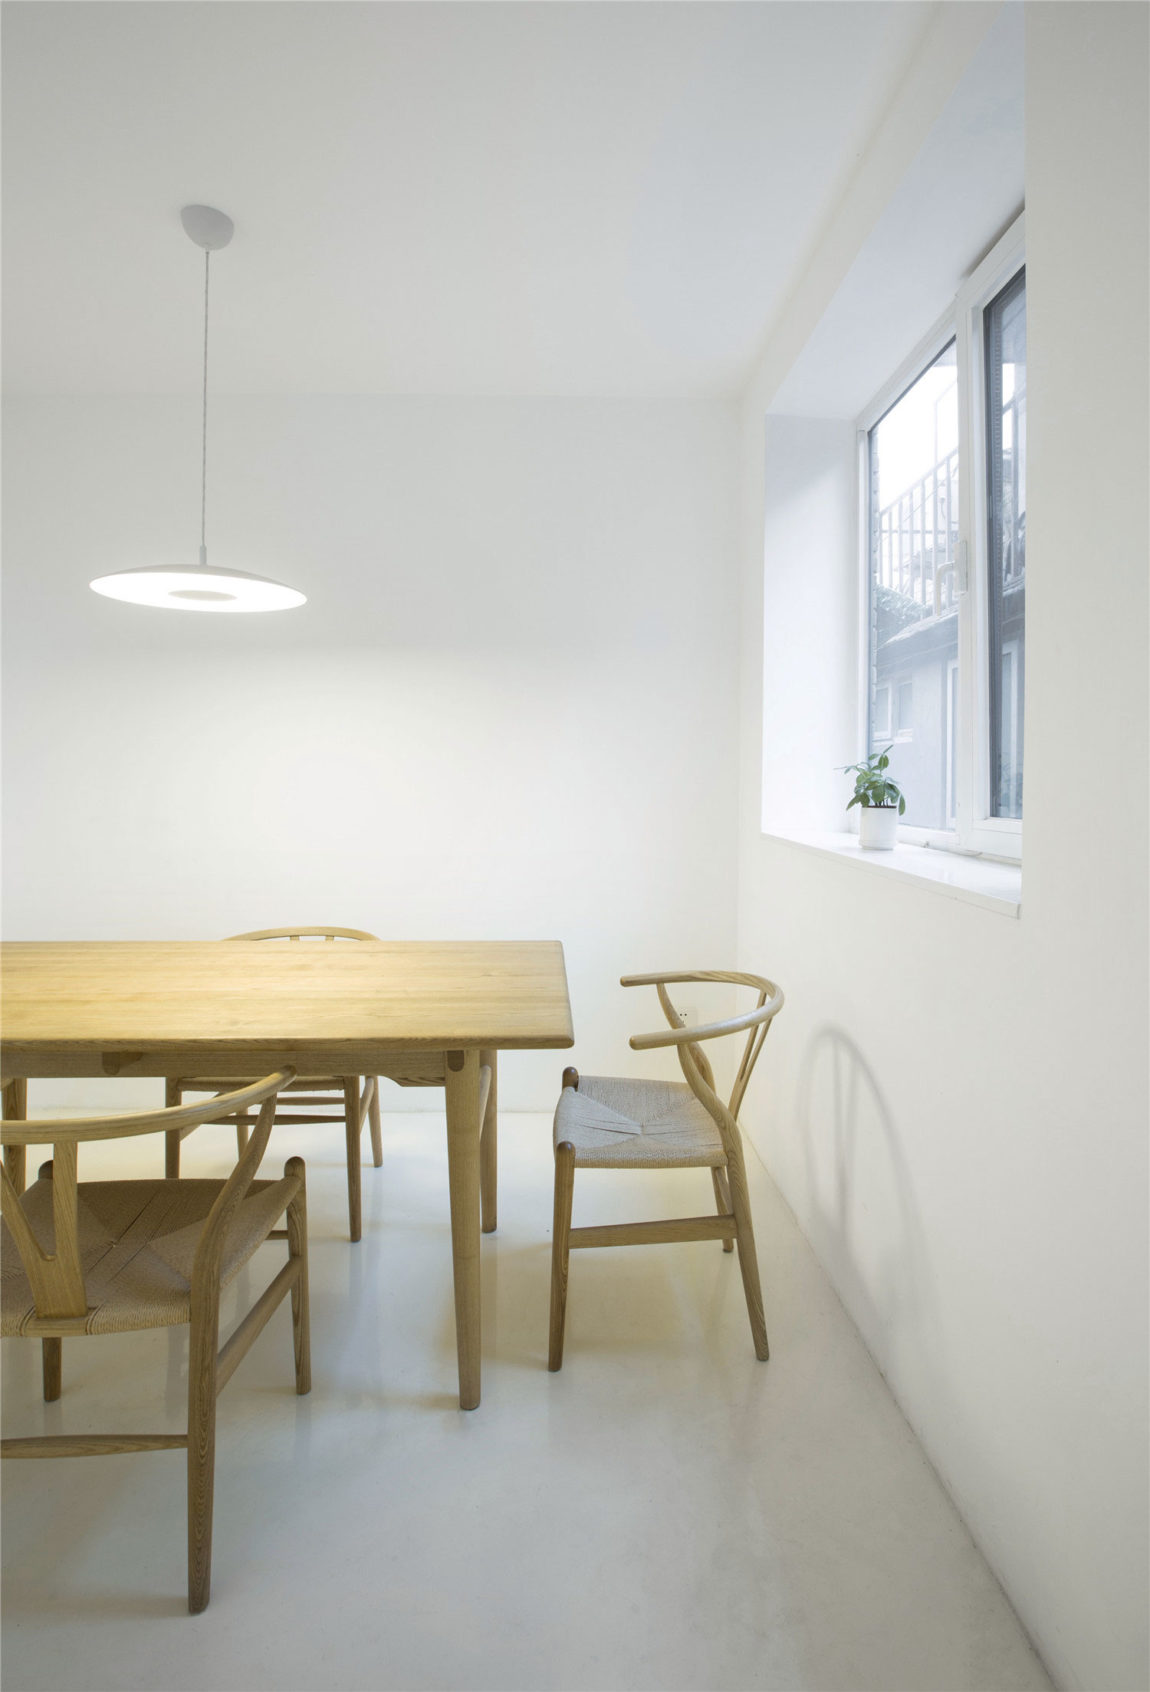 Beijing Hutong House Renovation by ARCHSTUDIO (5)